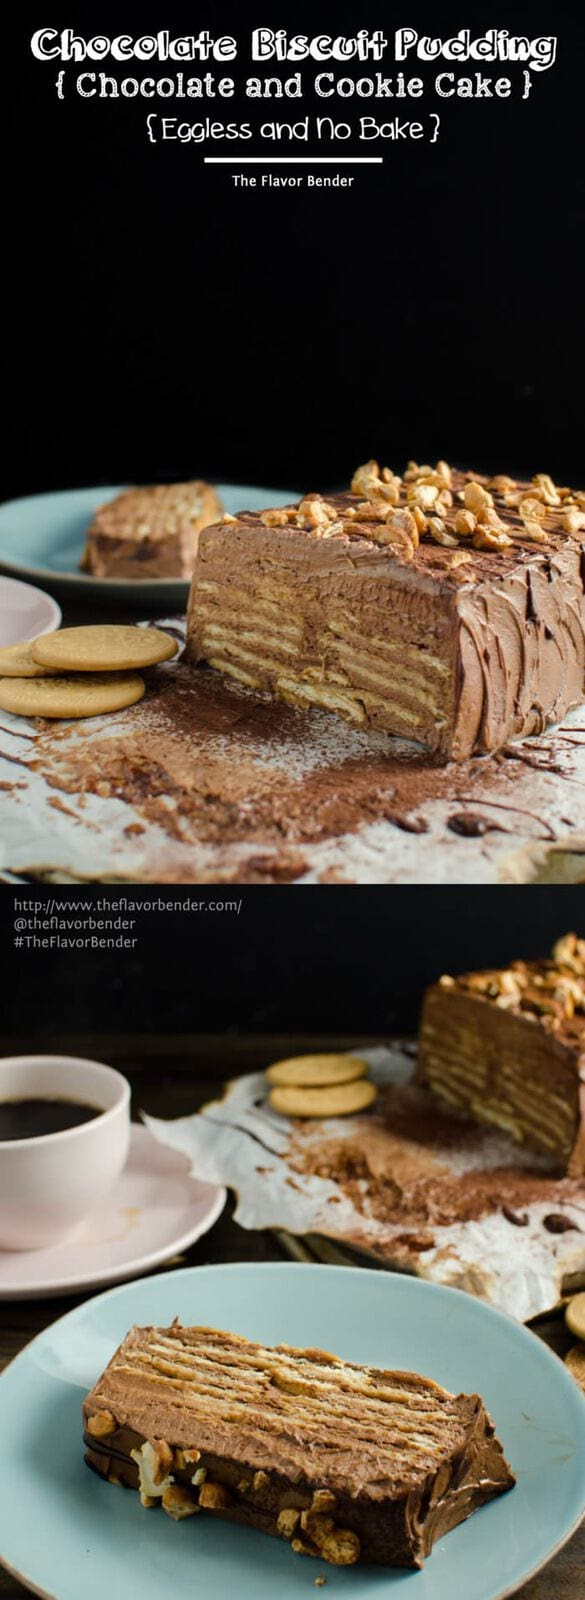 Sri Lankan Eggless Chocolate Biscuit Pudding No Bake Chocolate Cookie Cake The Flavor Bender